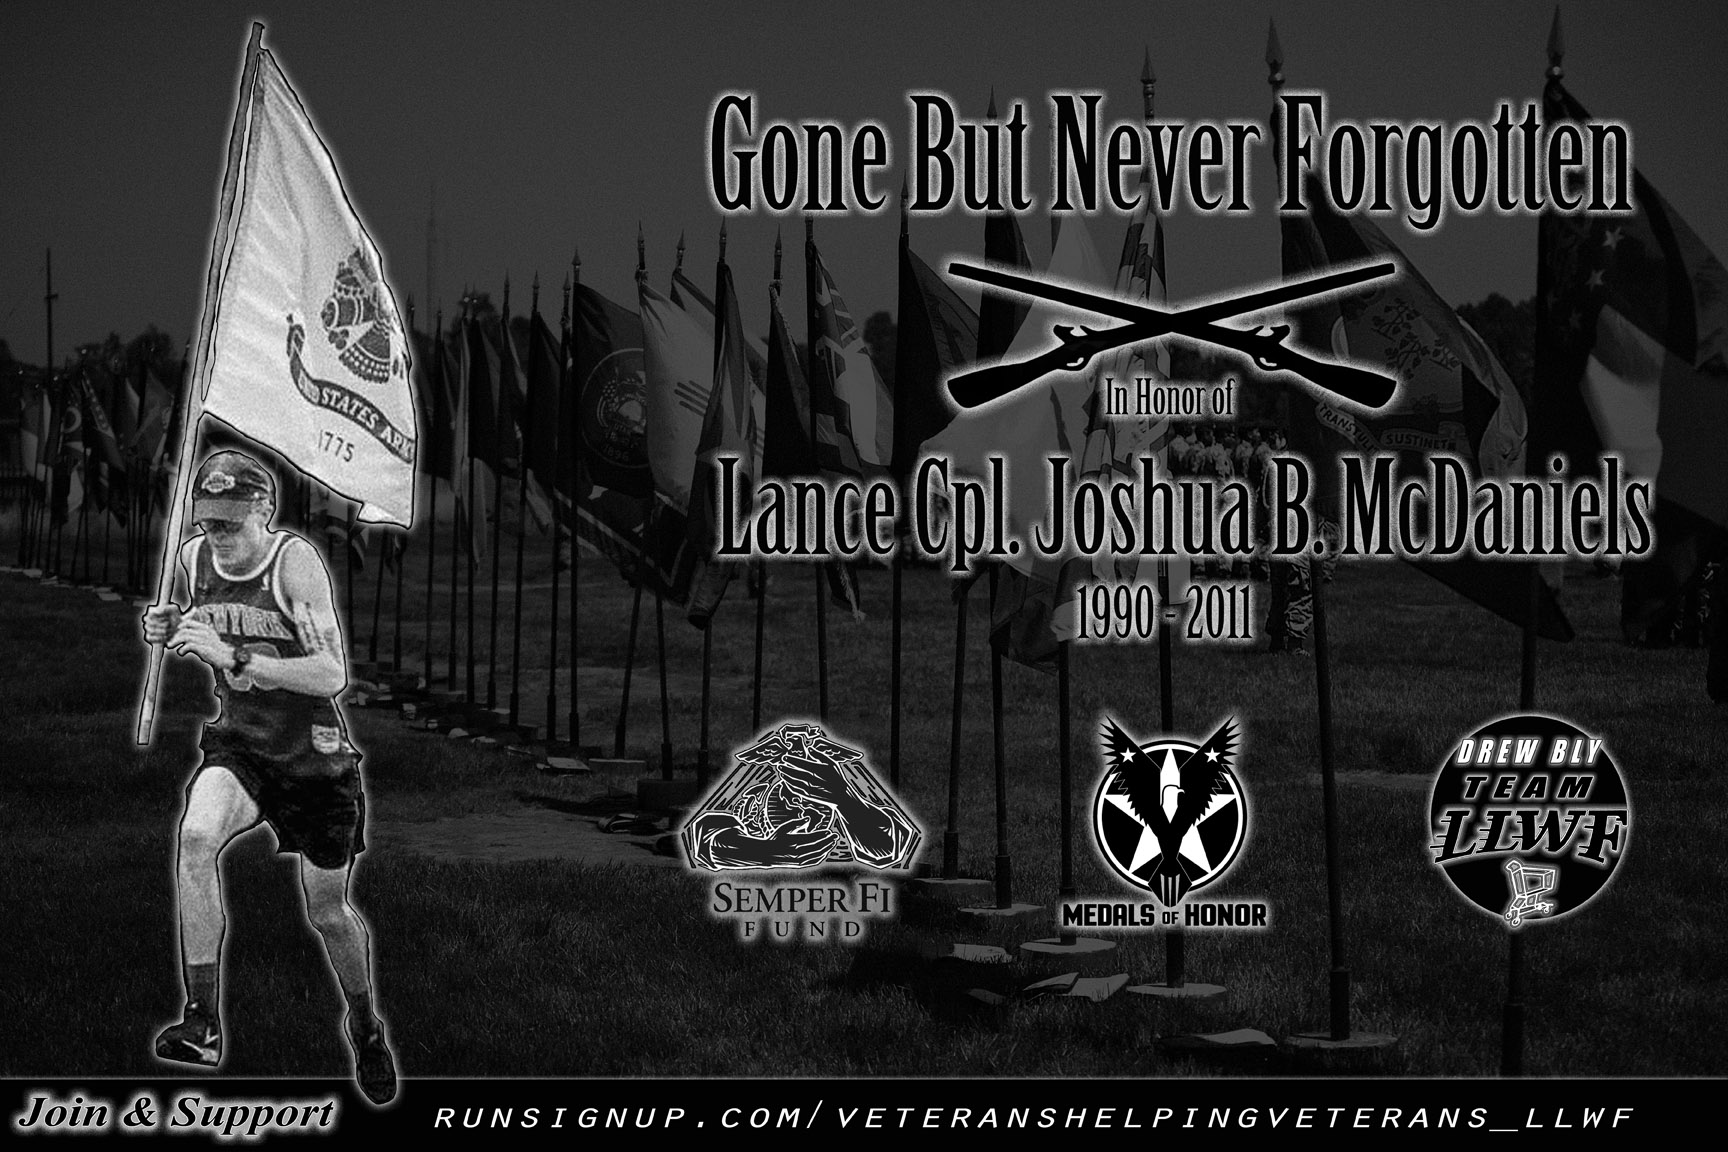 In Honor of Lance Cpl. Joshua B. McDaniels